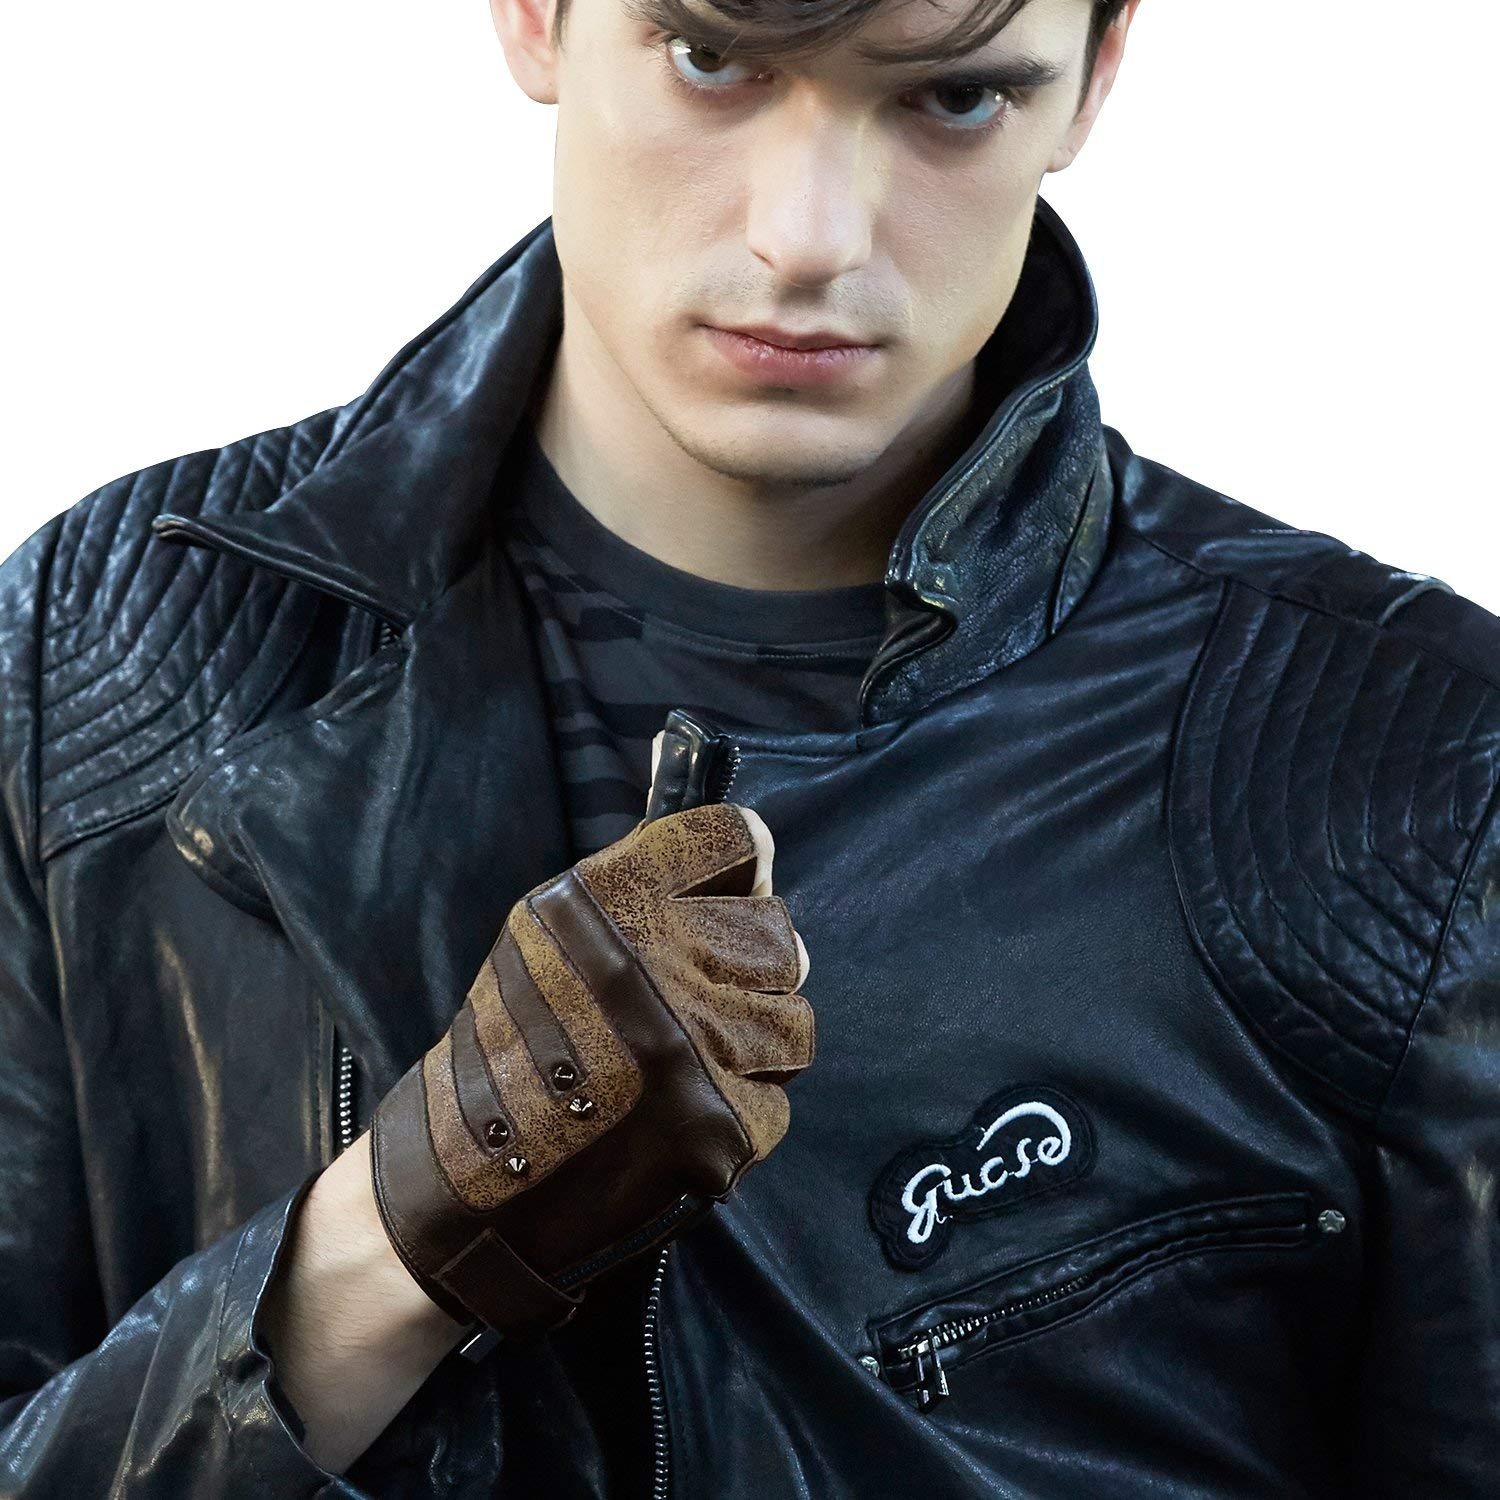 fa119667a Get Quotations · Fioretto Mens Fingerless Gloves Italian Genuine Goatskin  Half Finger Driving Leather Gloves Unlined with Rivets Punk